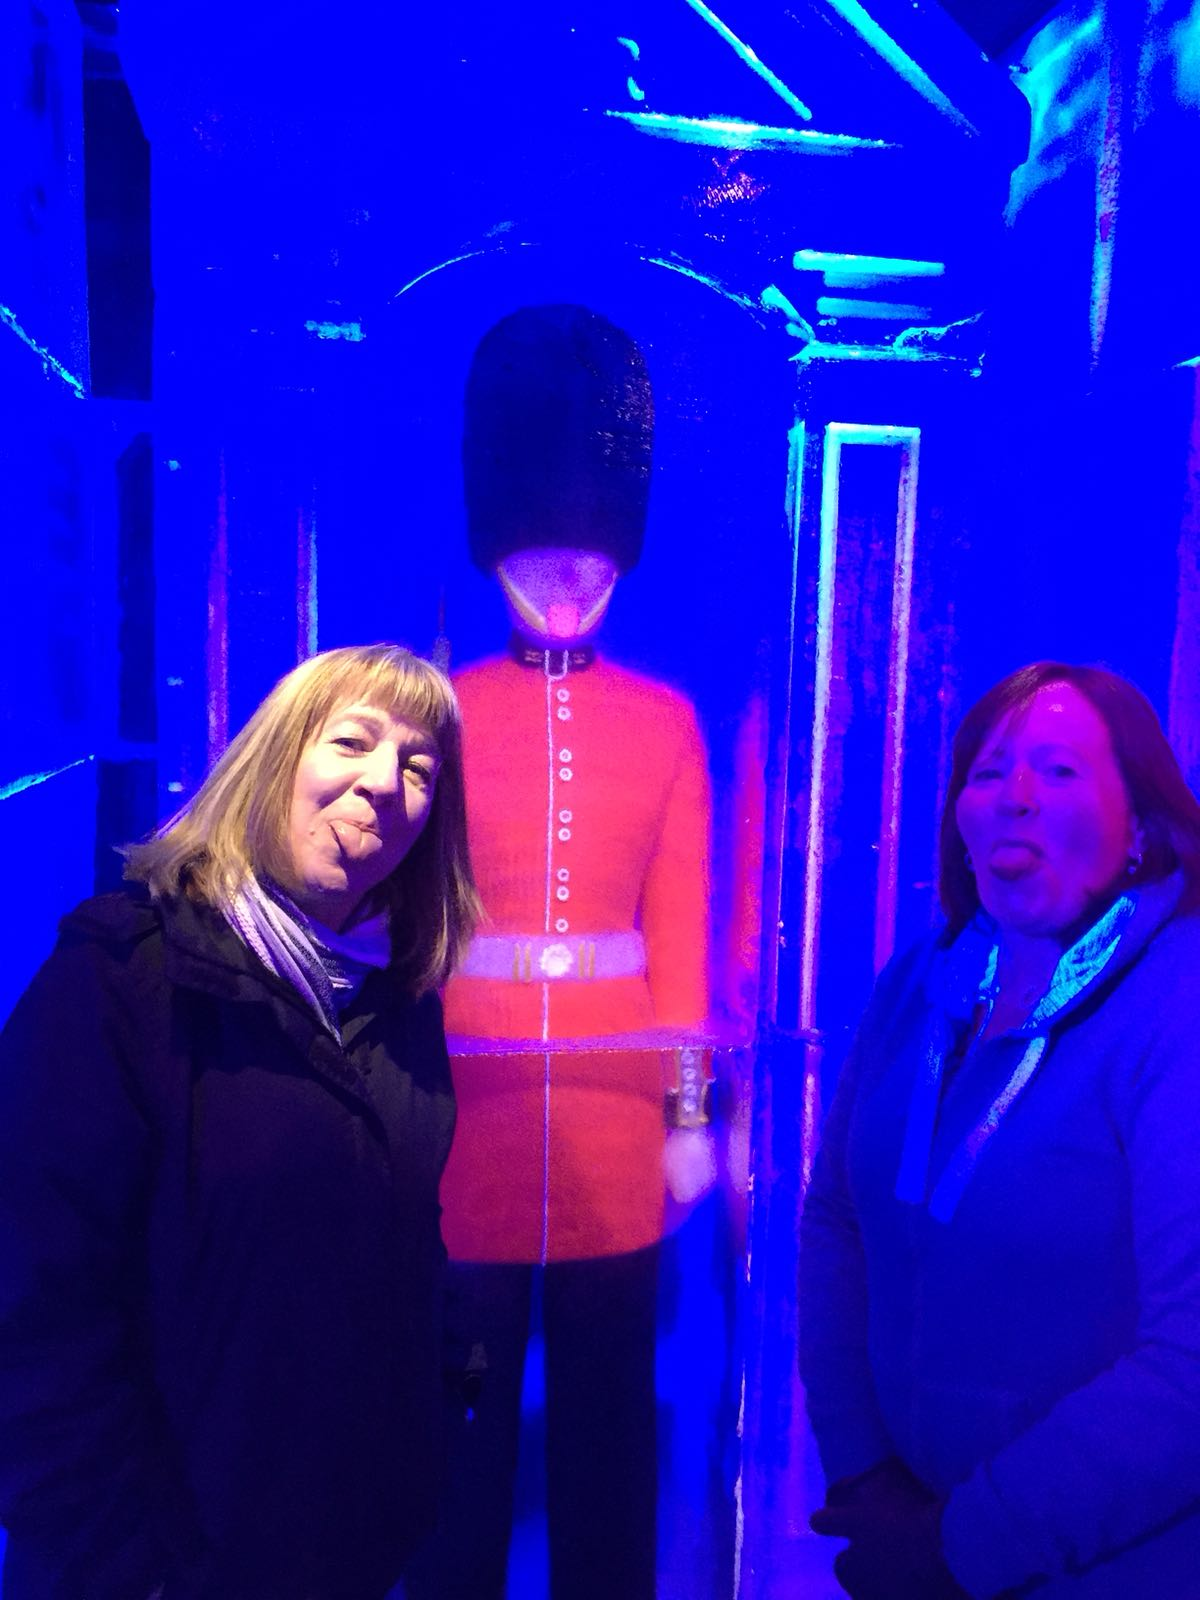 Nicky and Gillian tongues out! at the Belowzero Ice Bar London